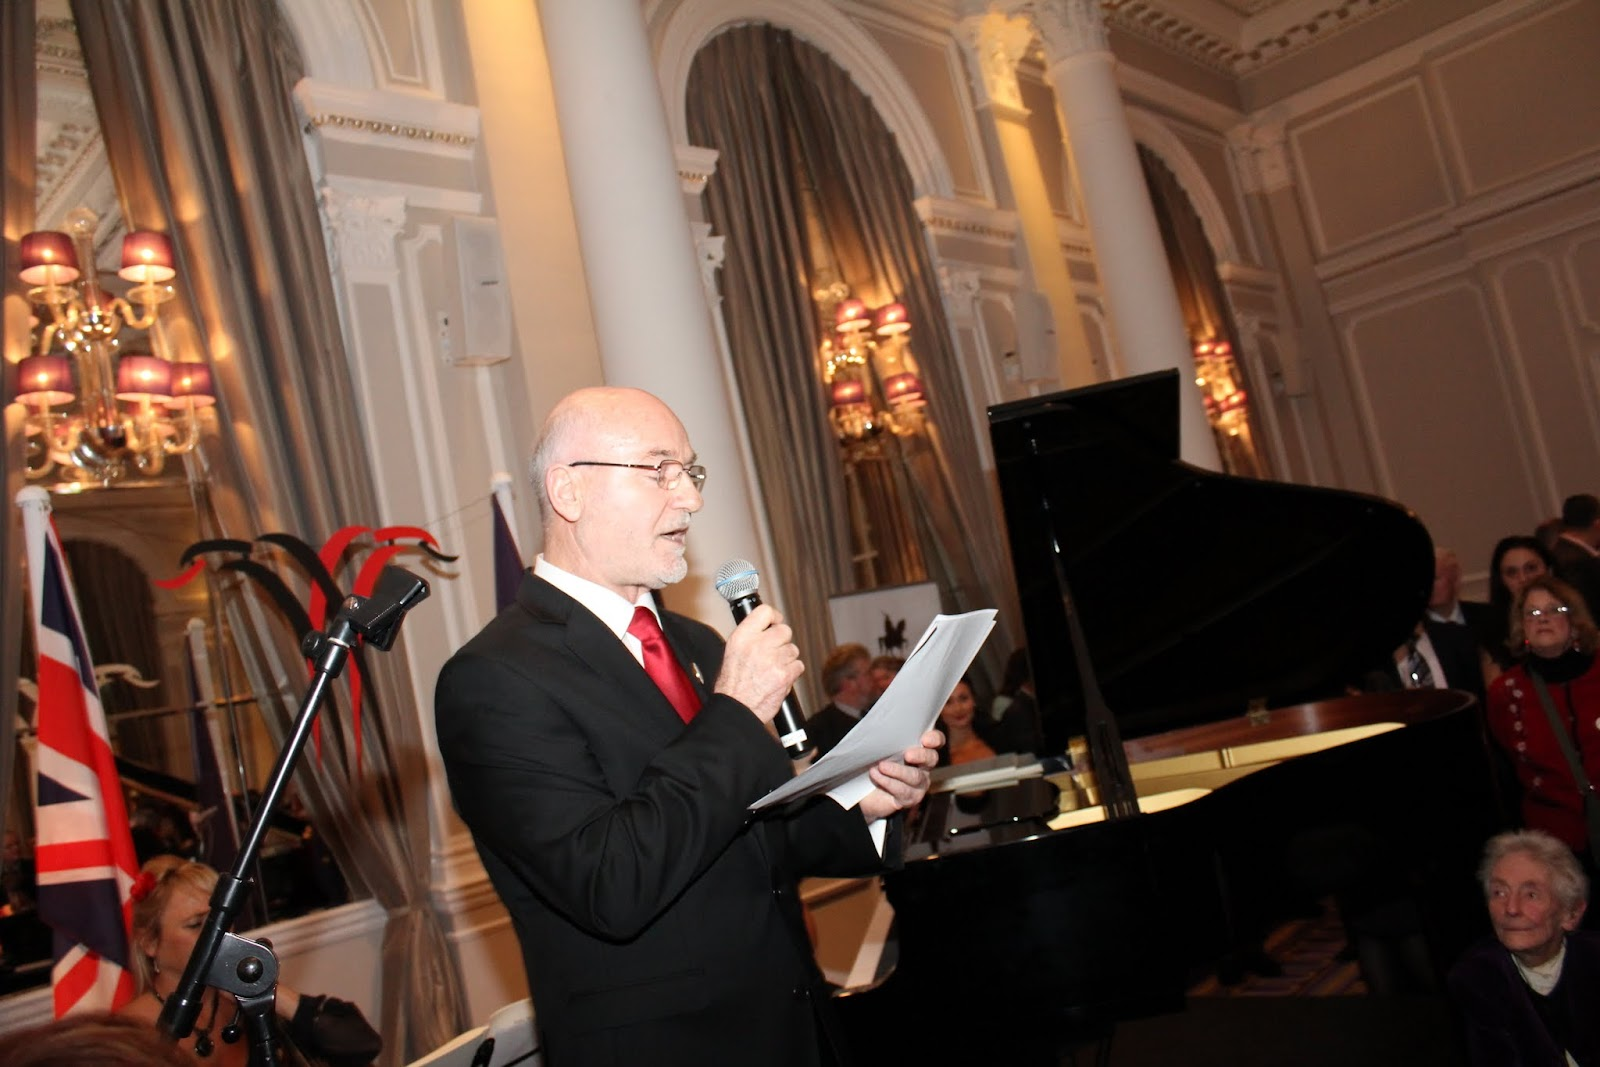 100th Anniversary of Albania's Independence - organised by Embassy of Albania in London